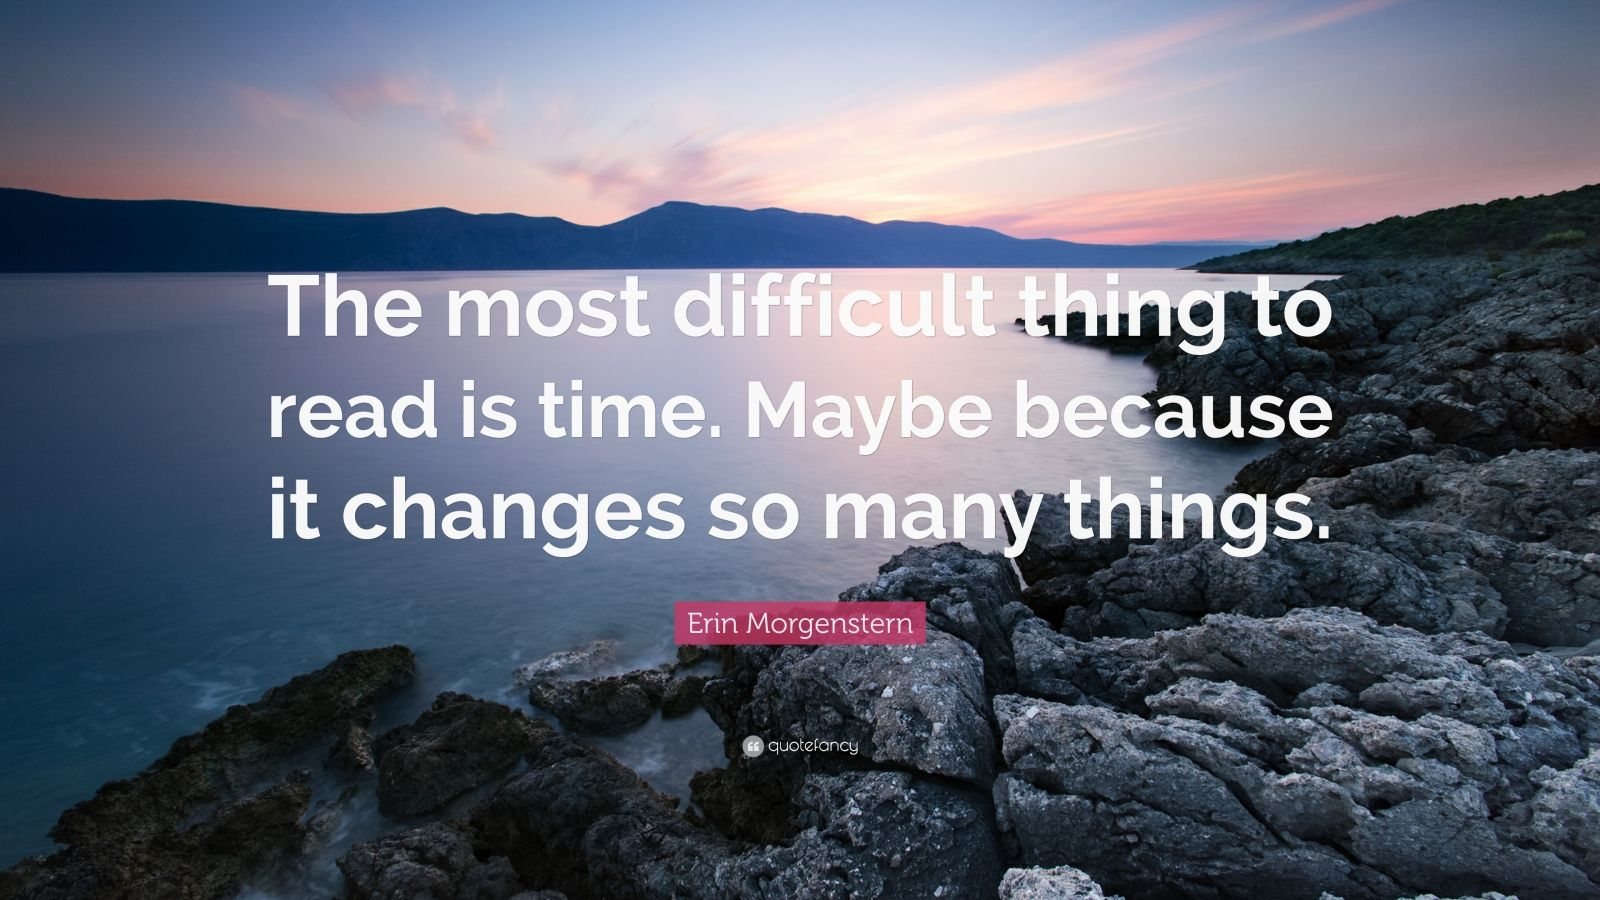 """Erin Morgenstern Quote: """"The most difficult thing to read is time. Maybe because it changes so many things."""""""